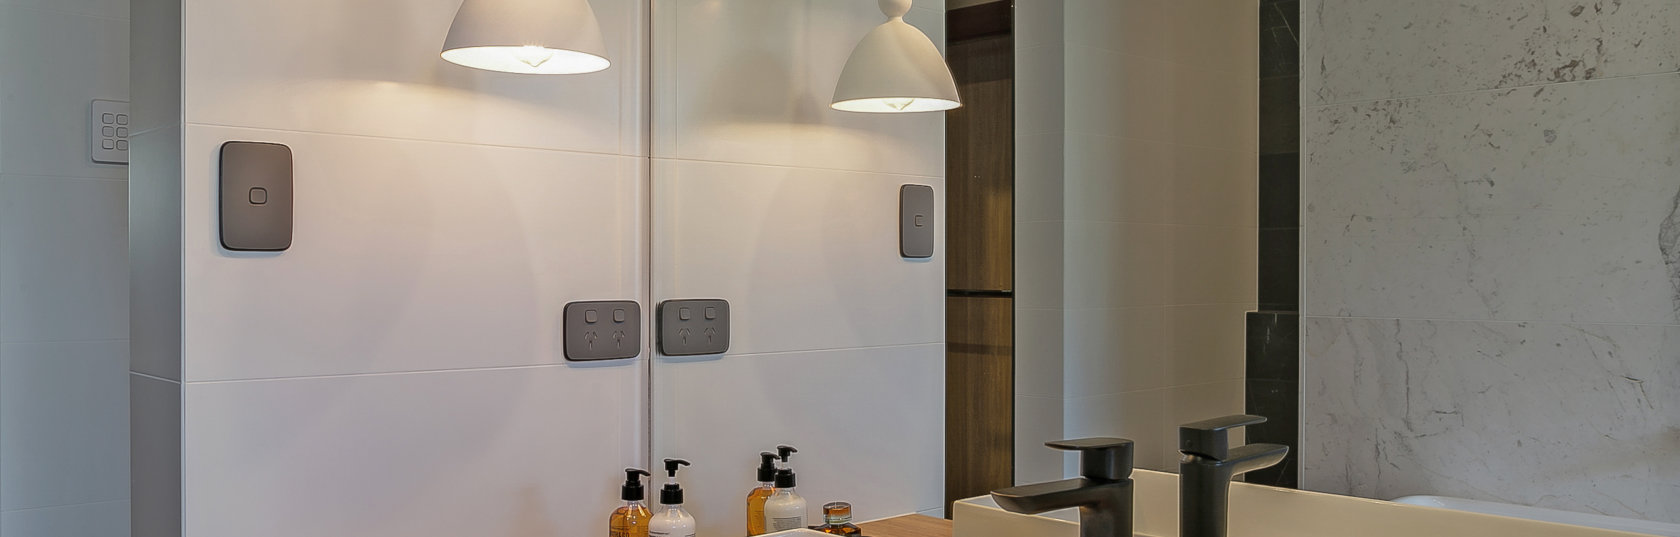 PDL timber light switches: a new natural and effortless look for your interior